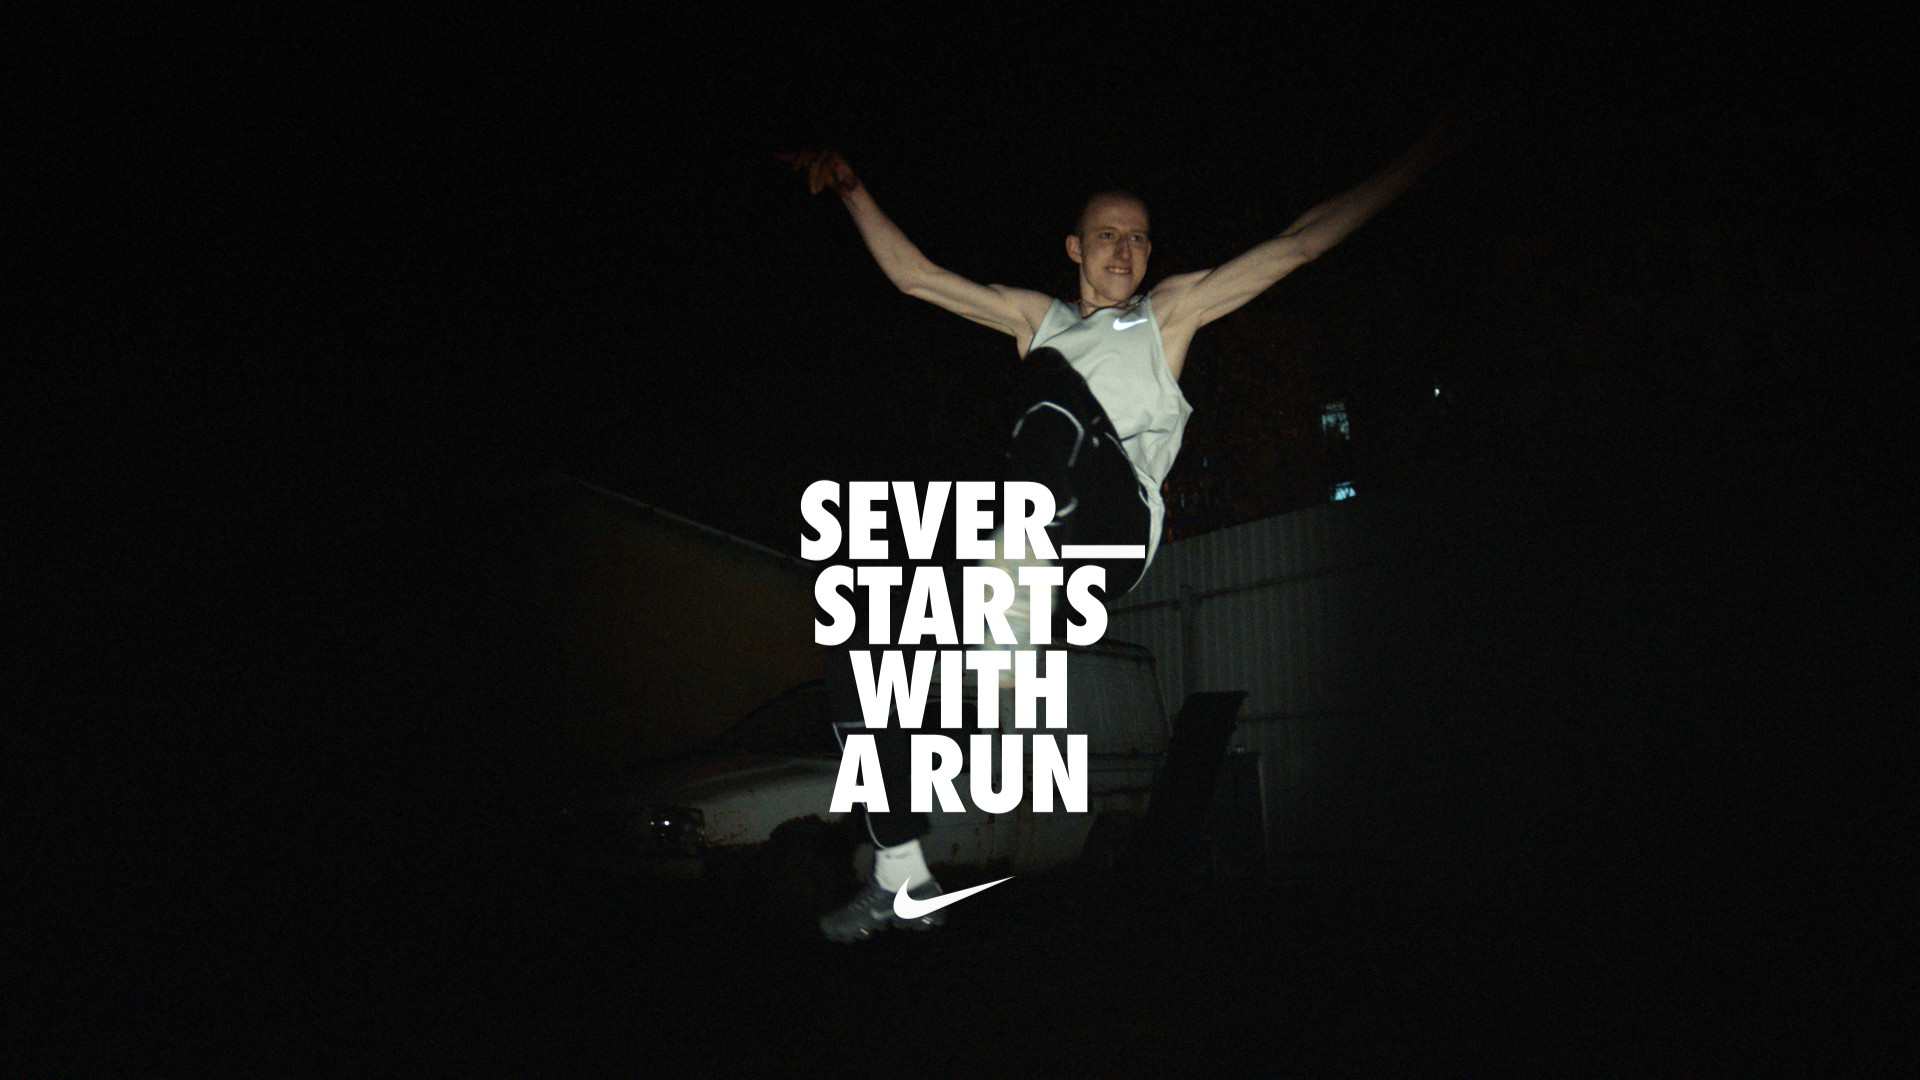 Nike - Everything Starts With A Run __ Sever-0655